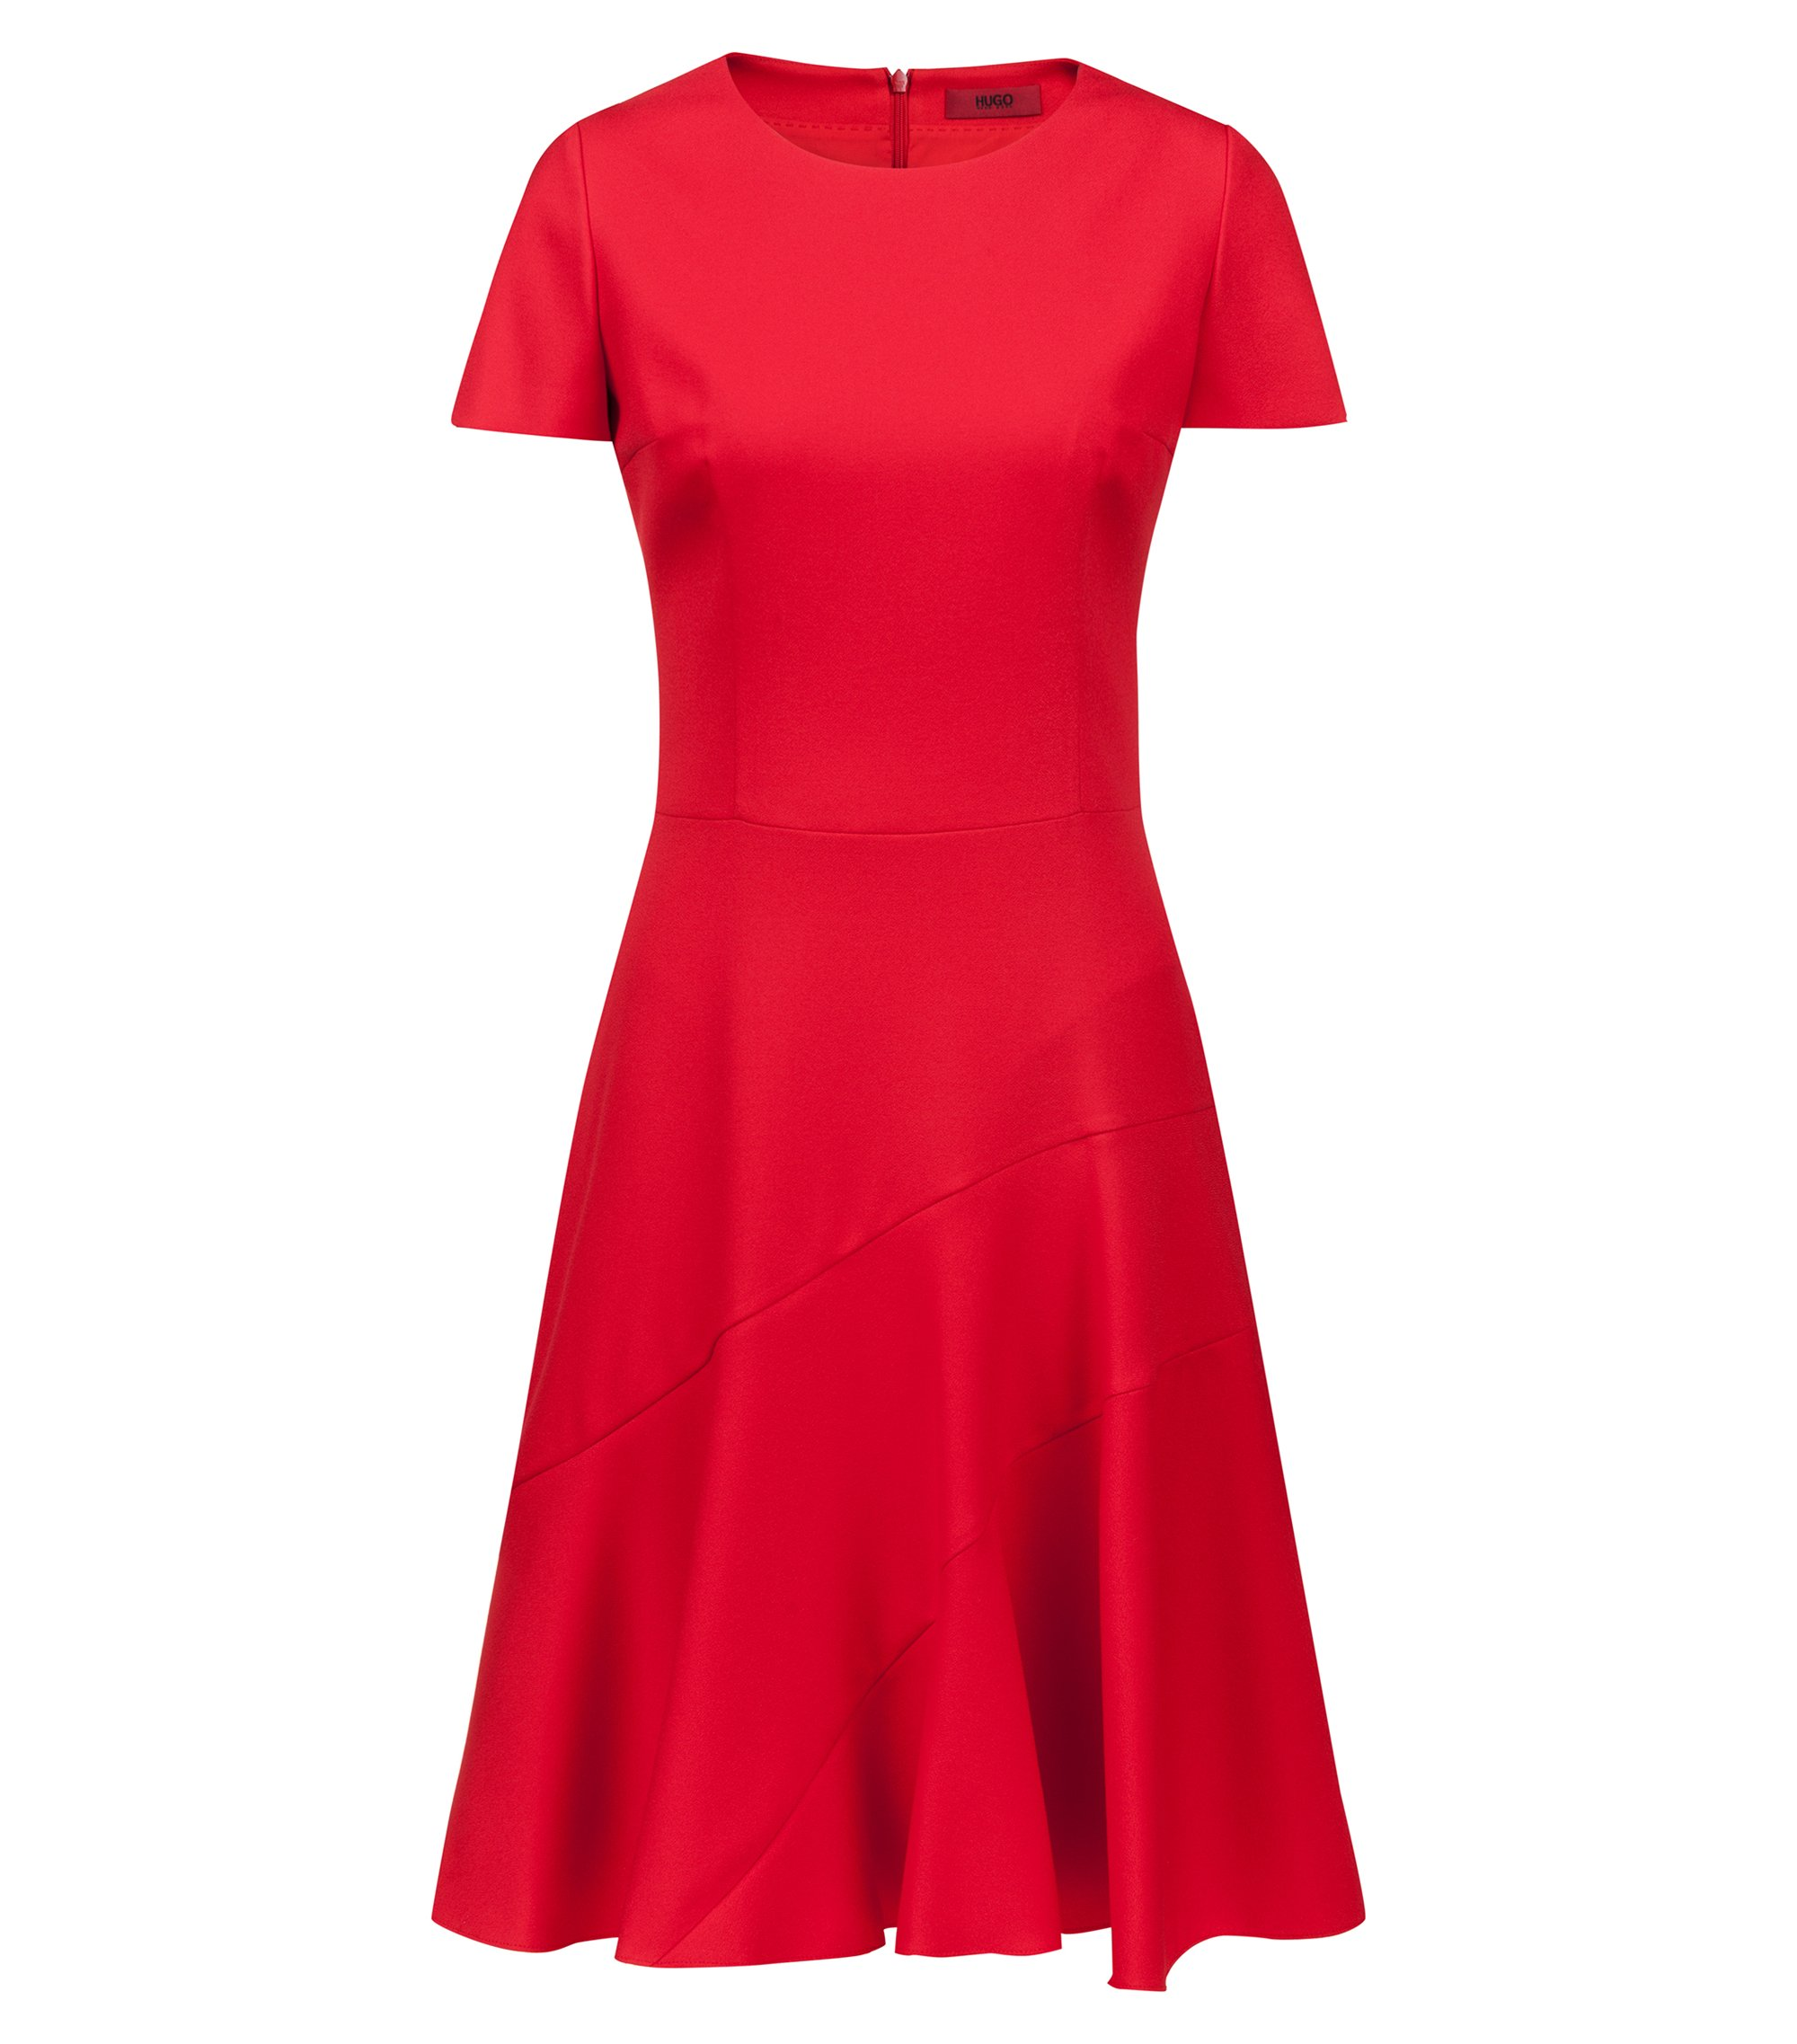 Short-sleeved A-line dress in stretch crepe, Red